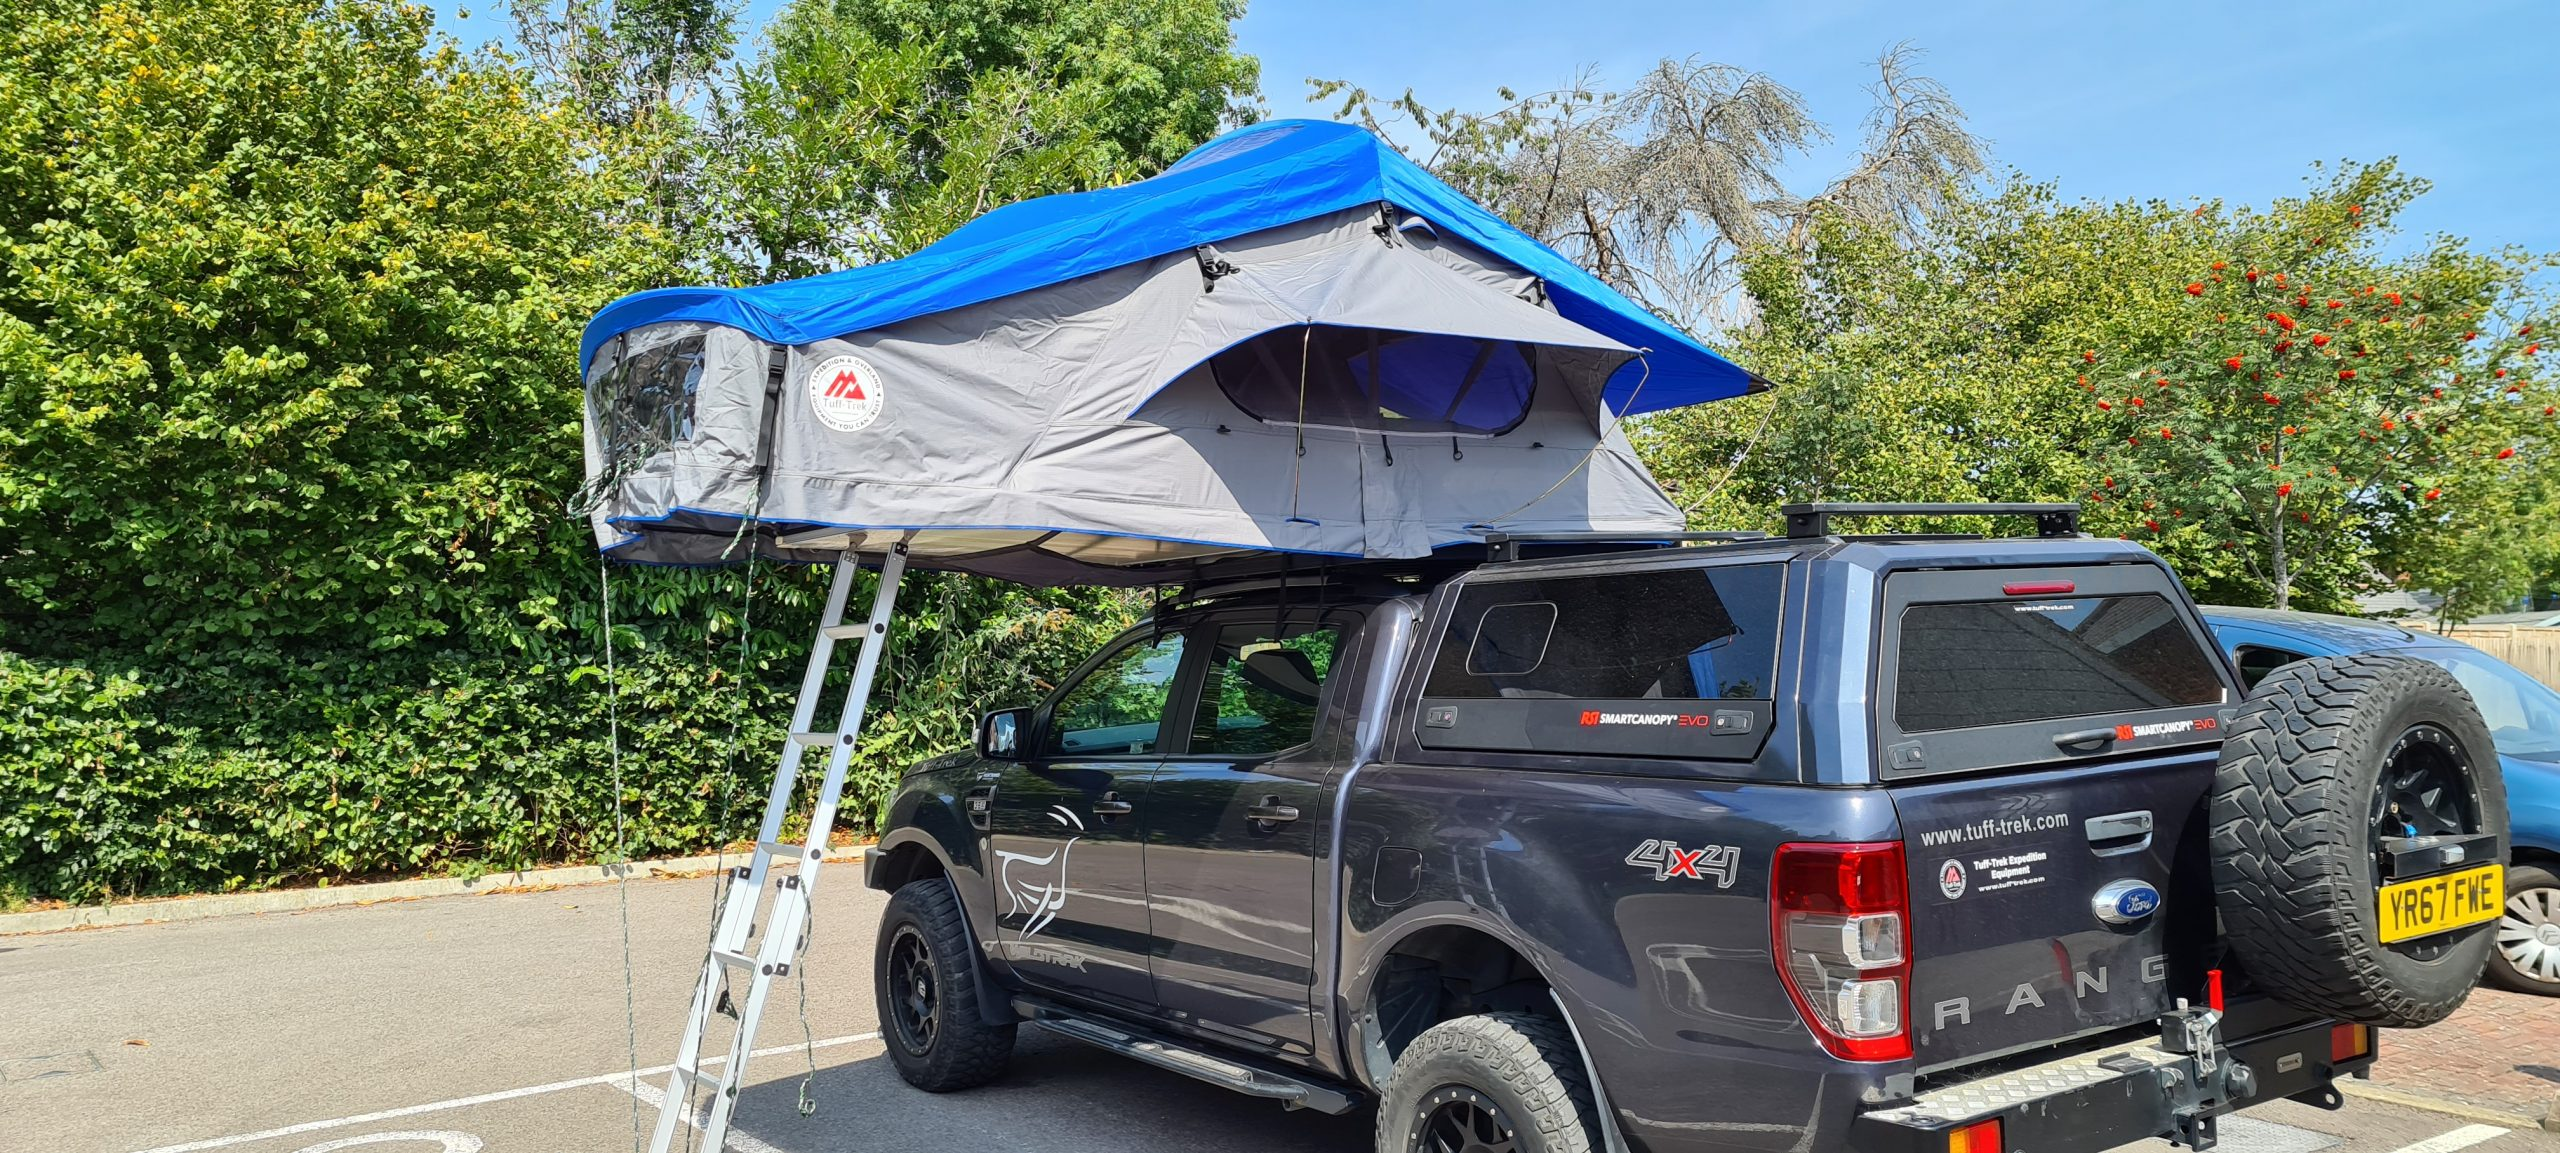 TUFF-TREK TT-03 SKYTOP ROOFTENT UK 005